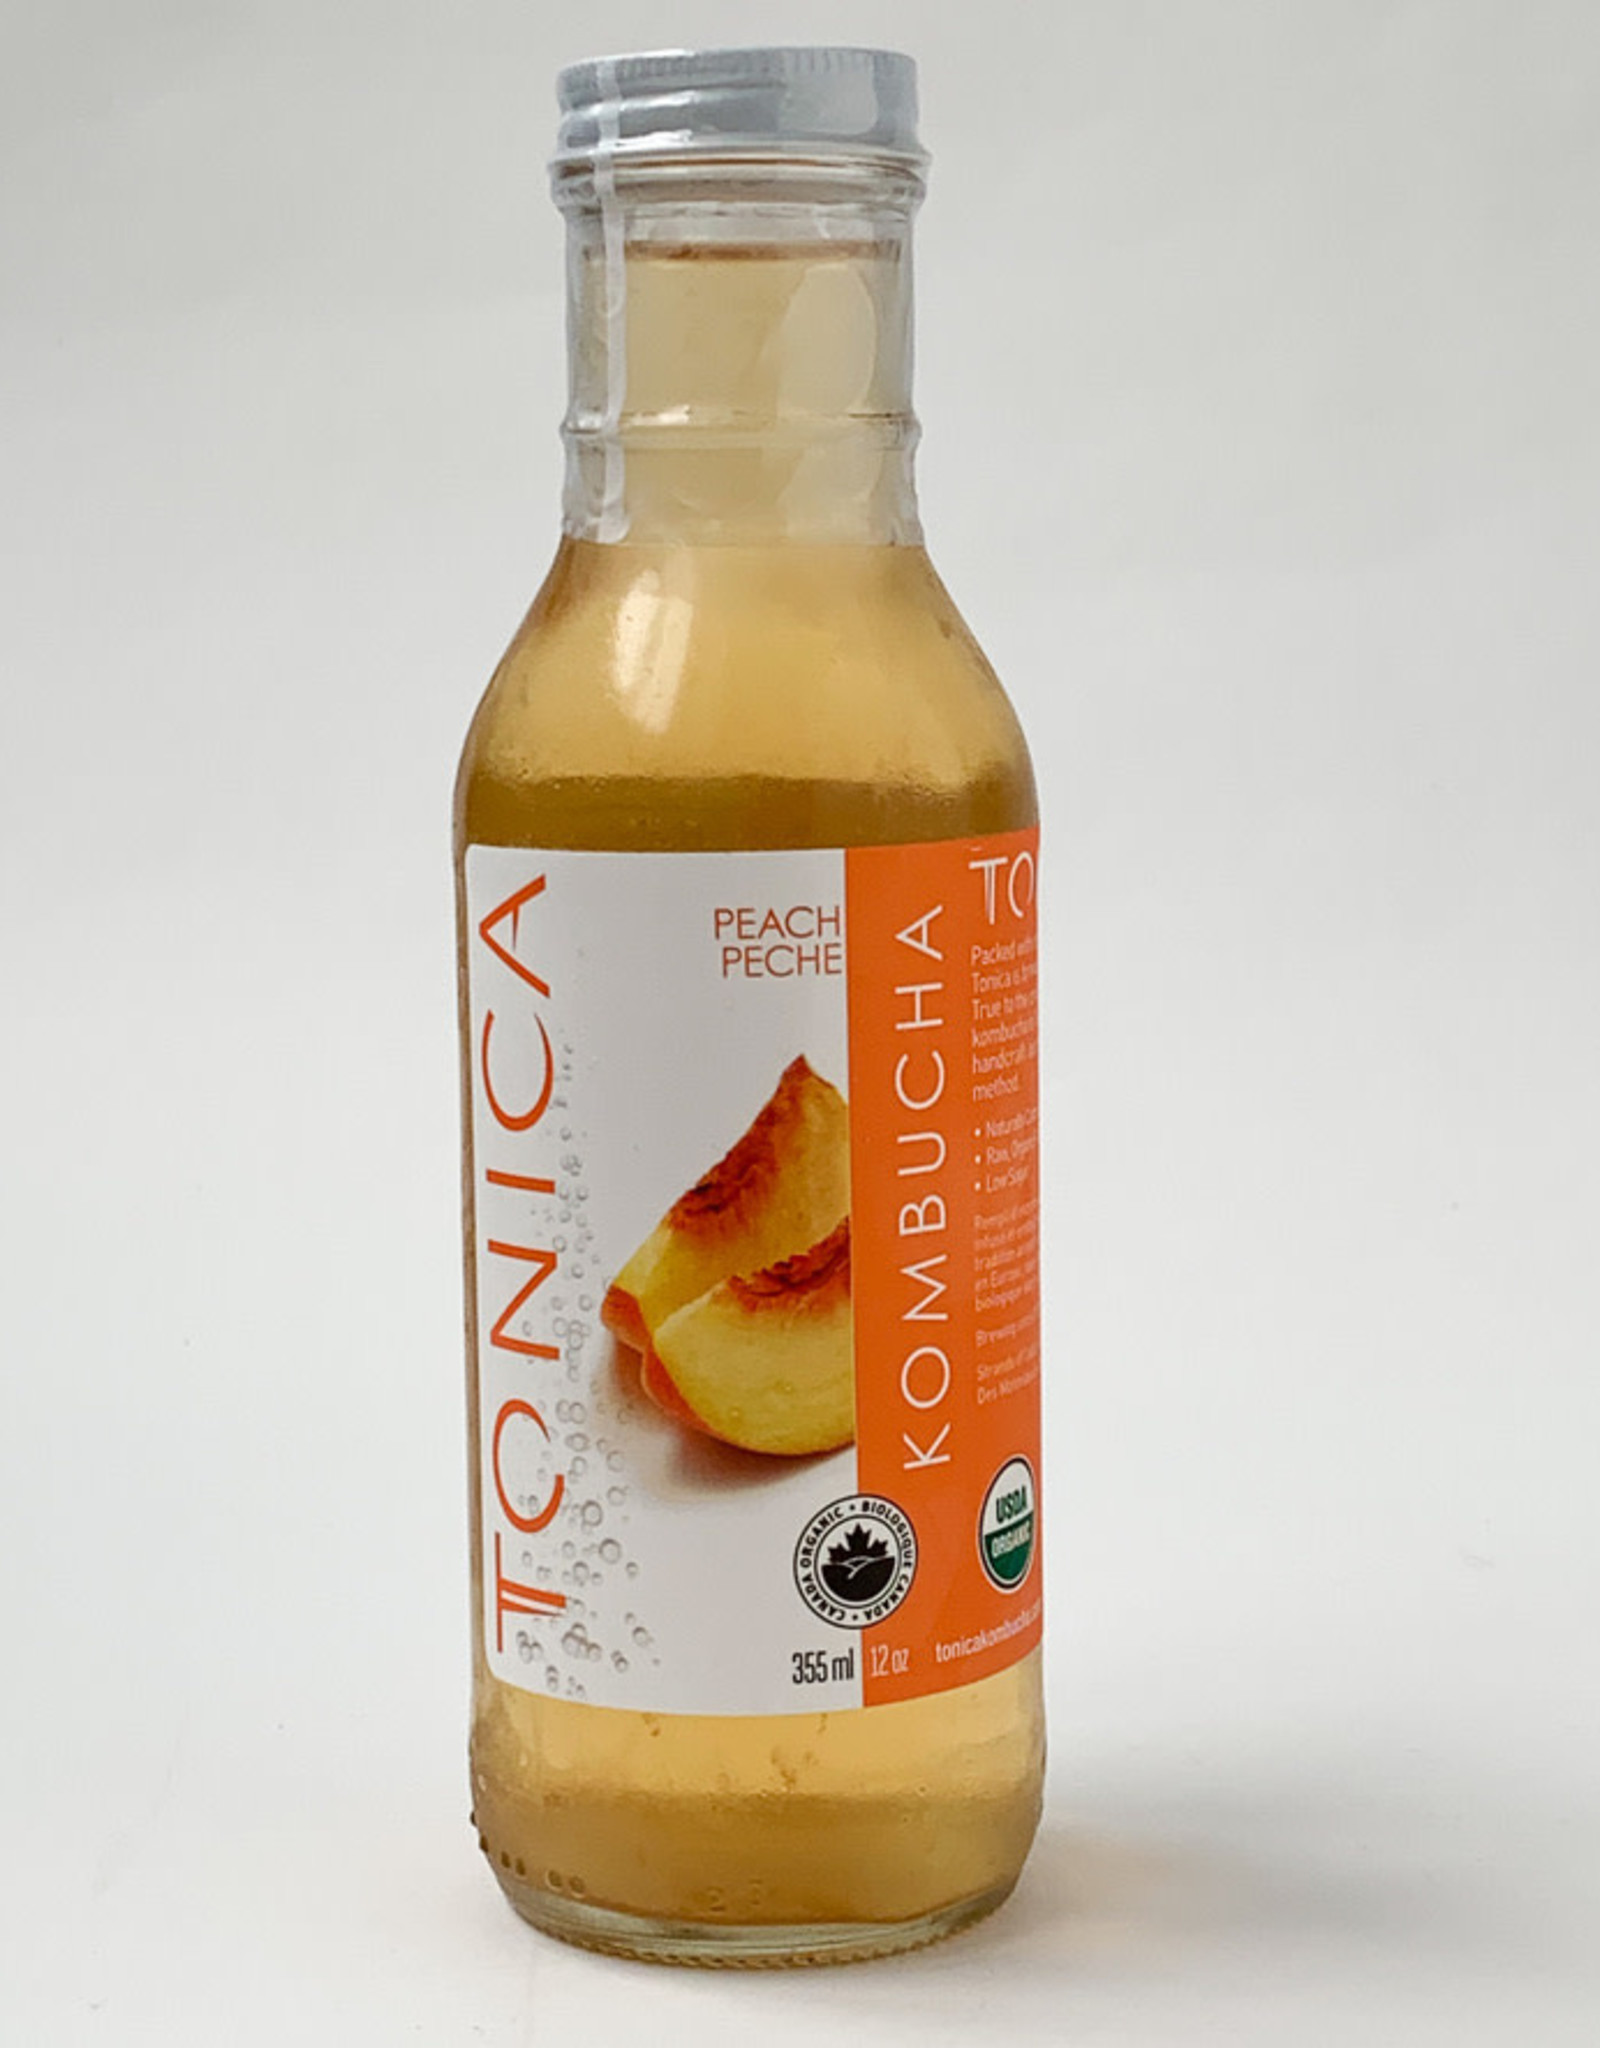 Tonica Tonica - Kombucha, Peach (355ml)